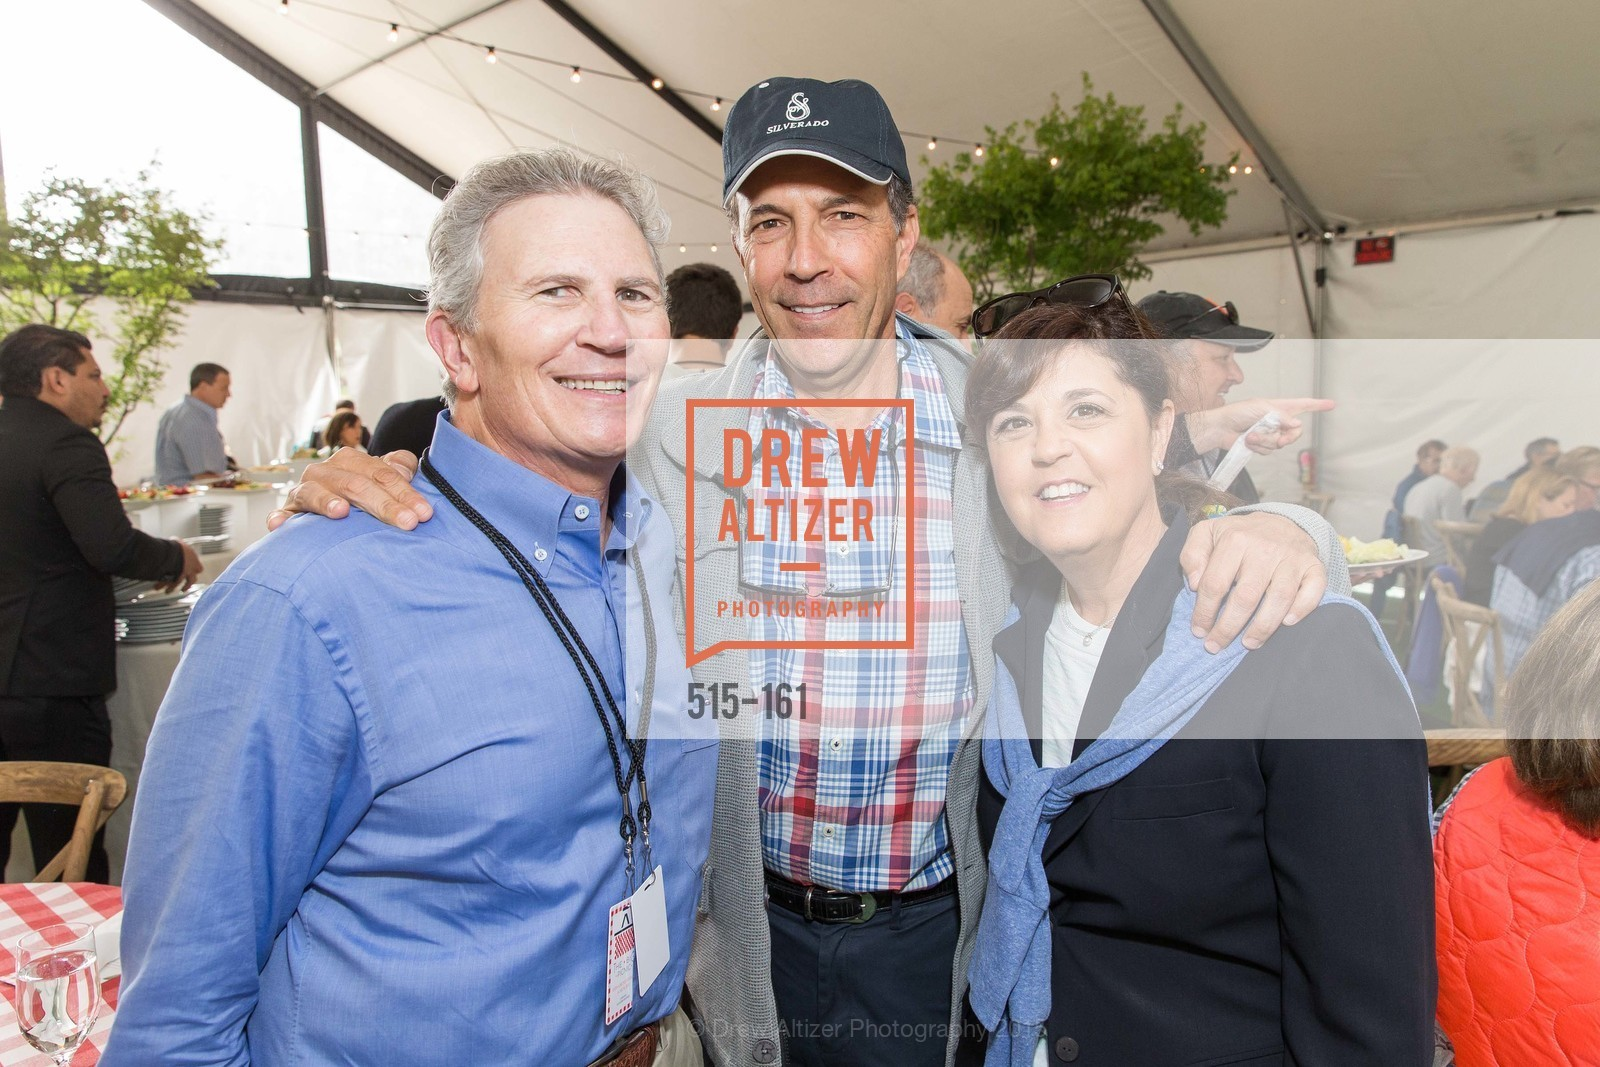 Doug Goldman, John Roos, Susie Roos, THE BIG PICNIC Kicking off  2015 Stern Grove Season, Stern Grove. 2750 19th Avenue, June 14th, 2015,Drew Altizer, Drew Altizer Photography, full-service agency, private events, San Francisco photographer, photographer california